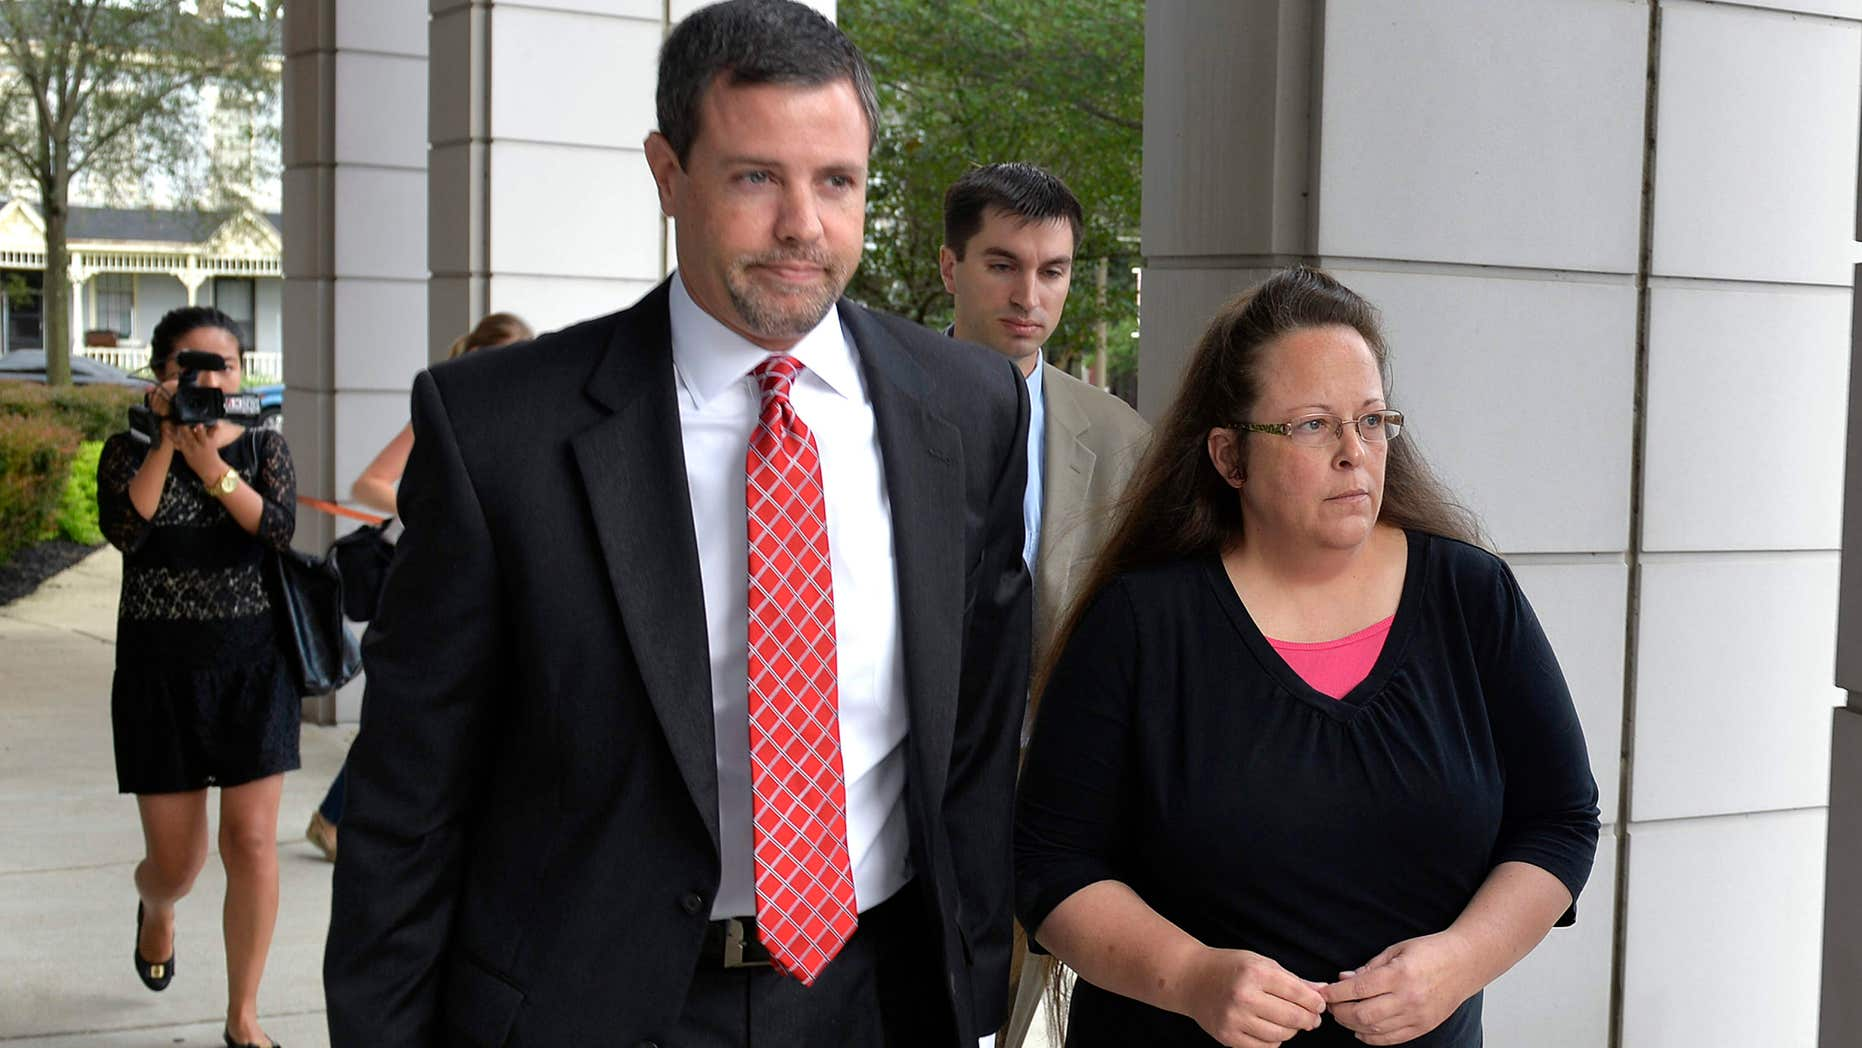 July 20, 2015: Rowan County Clerk Kim Davis, right, walks with her attorney Roger Gannam into the United States District Court for the Eastern District of Kentucky in Covington, Ky.